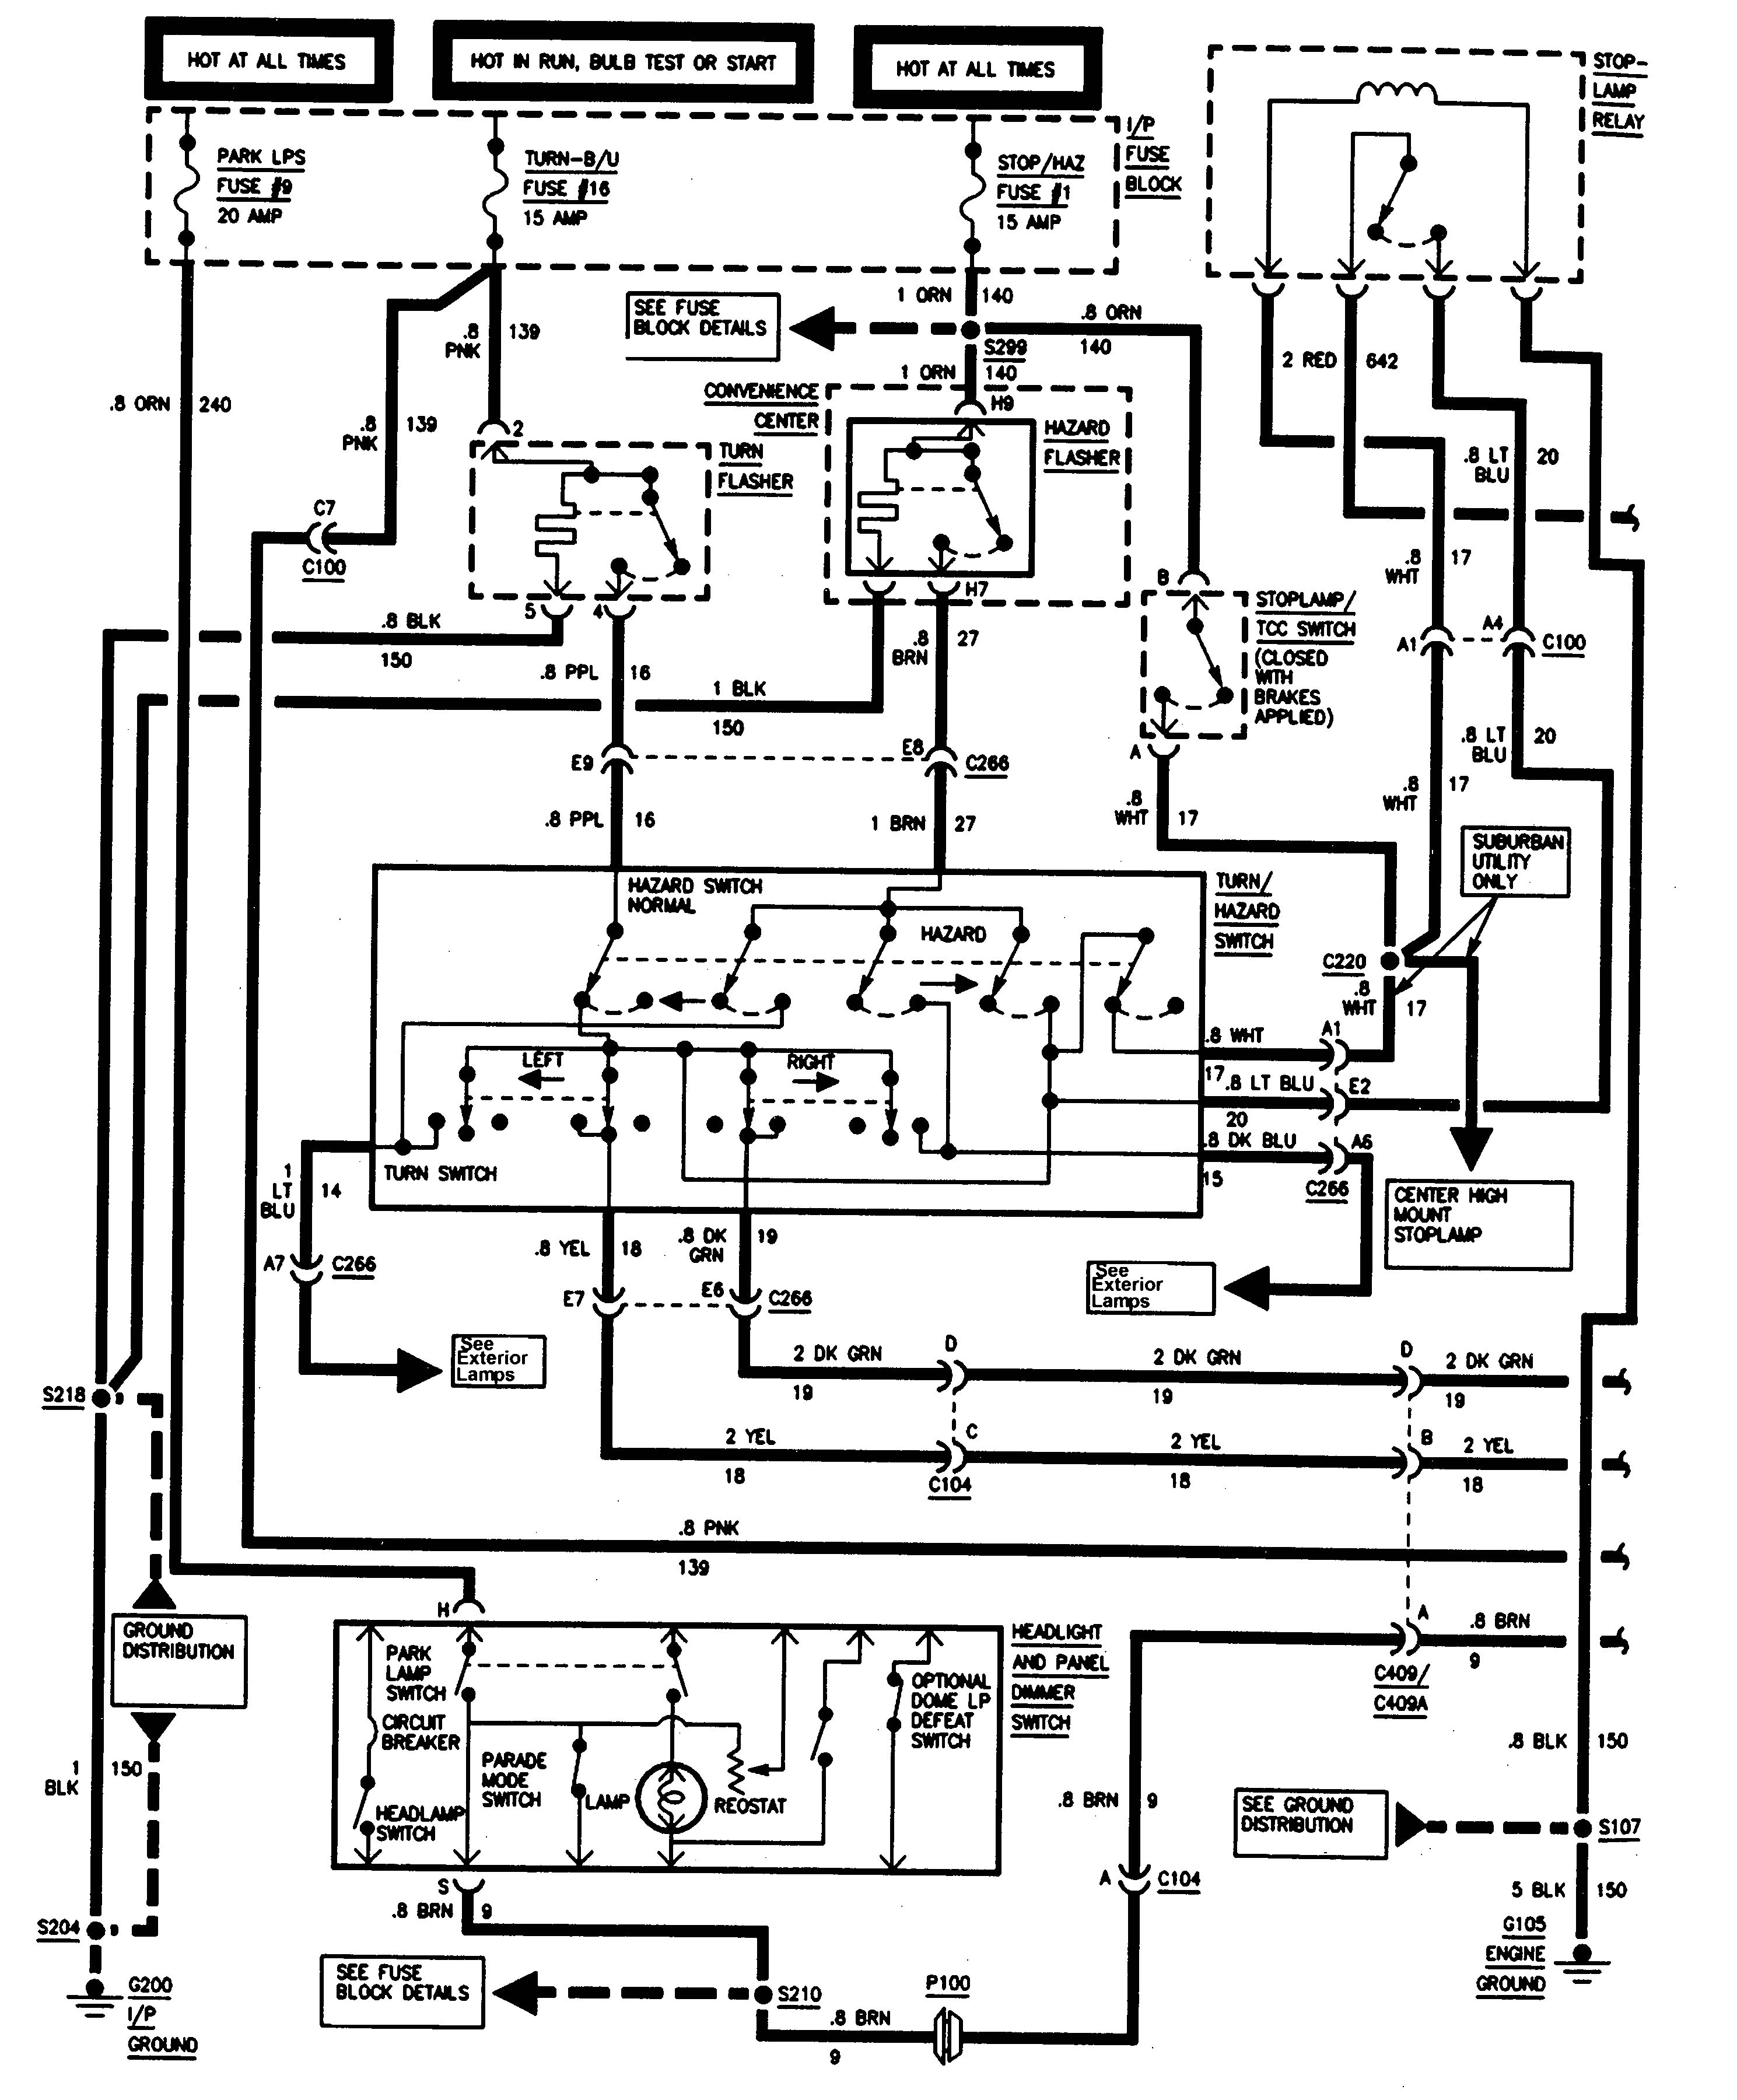 1990 Gmc Truck Wiring Nissan Sunny Fuse Box Diagram Begeboy Wiring Diagram Source